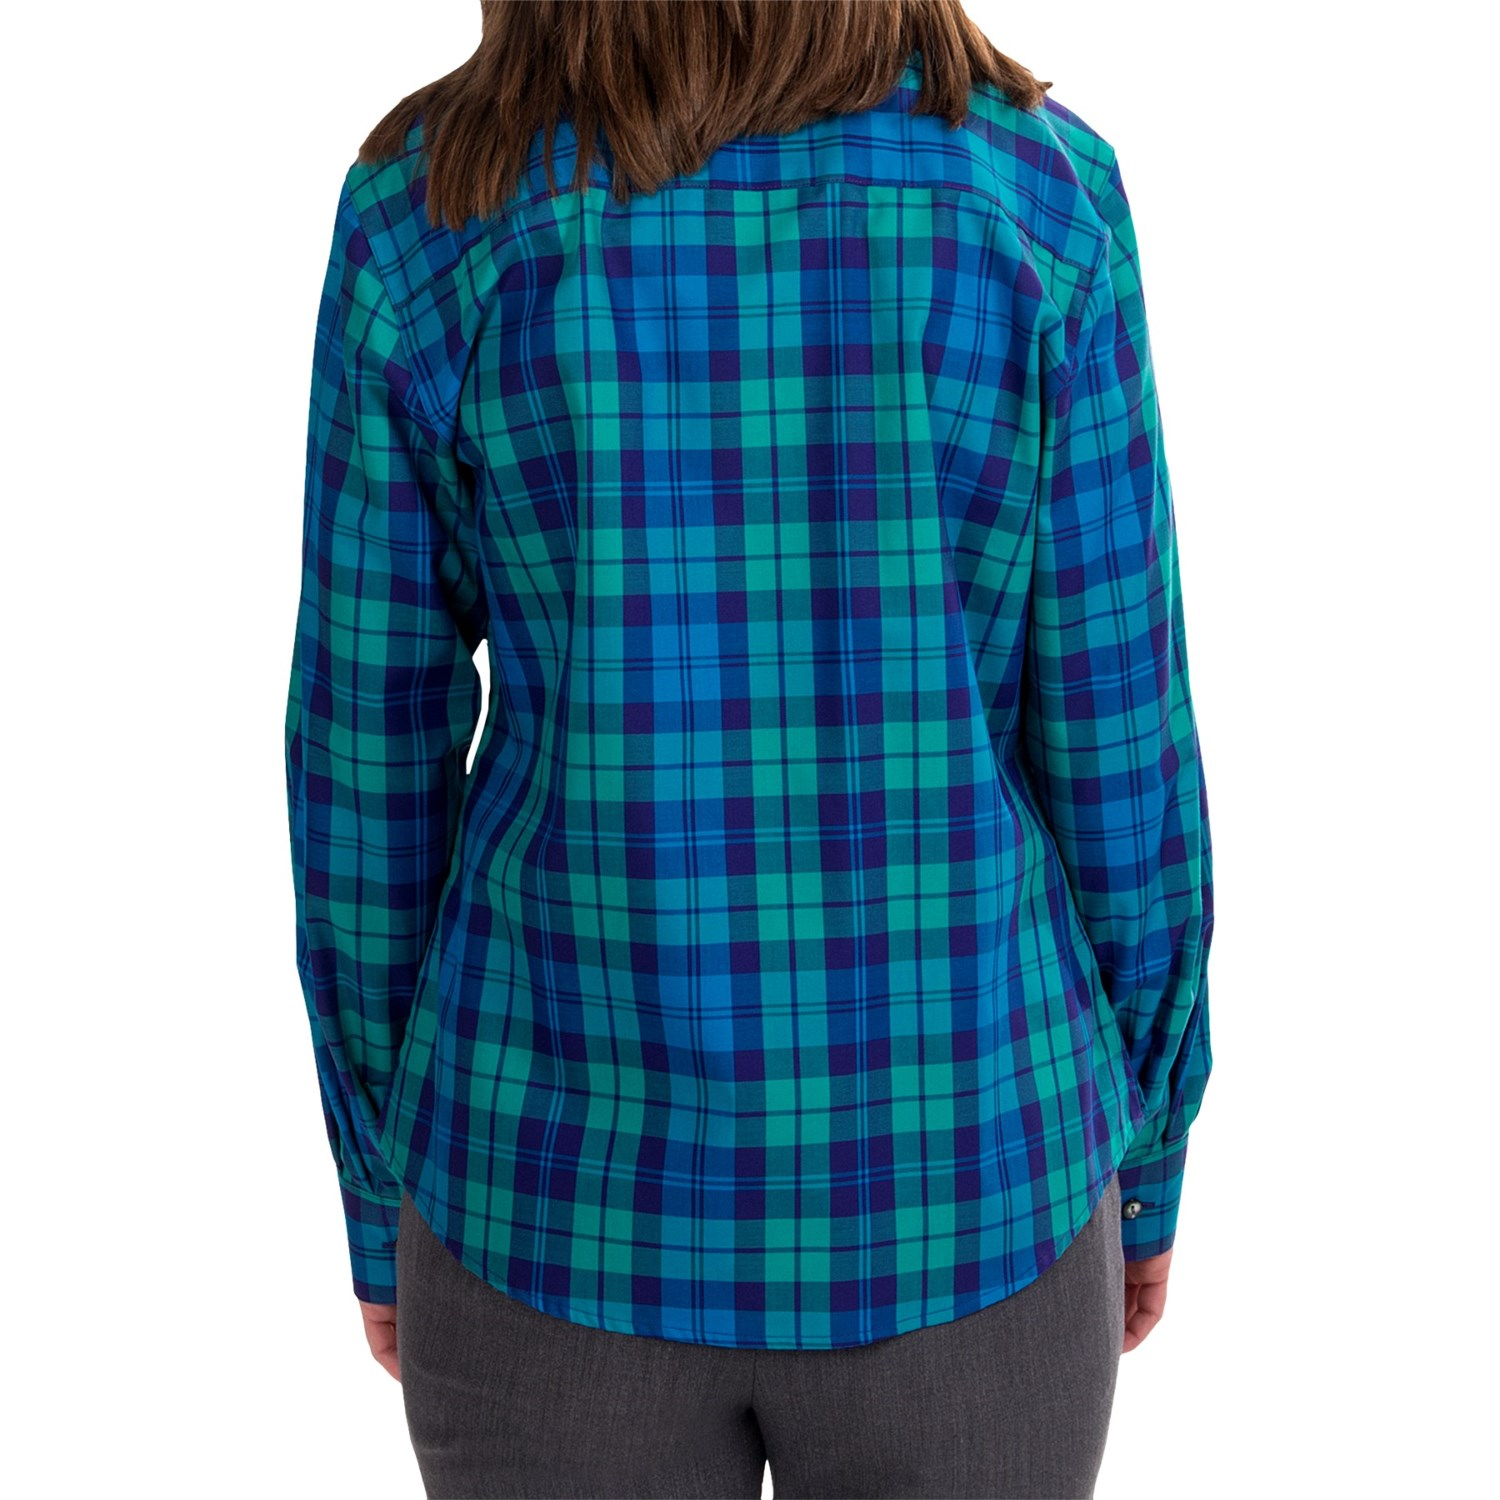 Foxcroft shaped plaid shirt for women 6630g save 83 Wrinkle free shirts for women